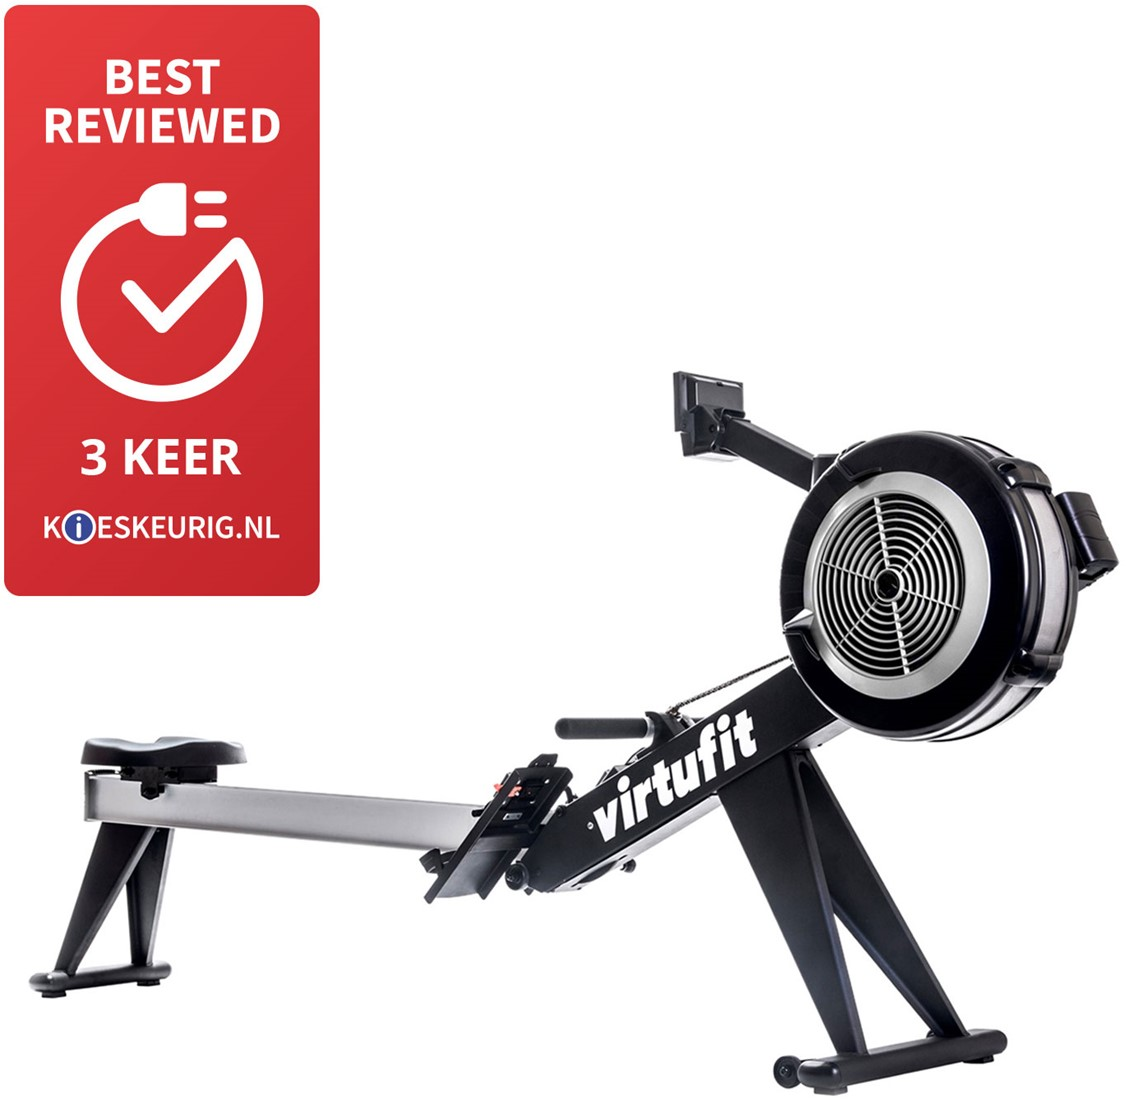 1. VirtuFit Ultimate Pro 2 Ergometer Roeitrainer